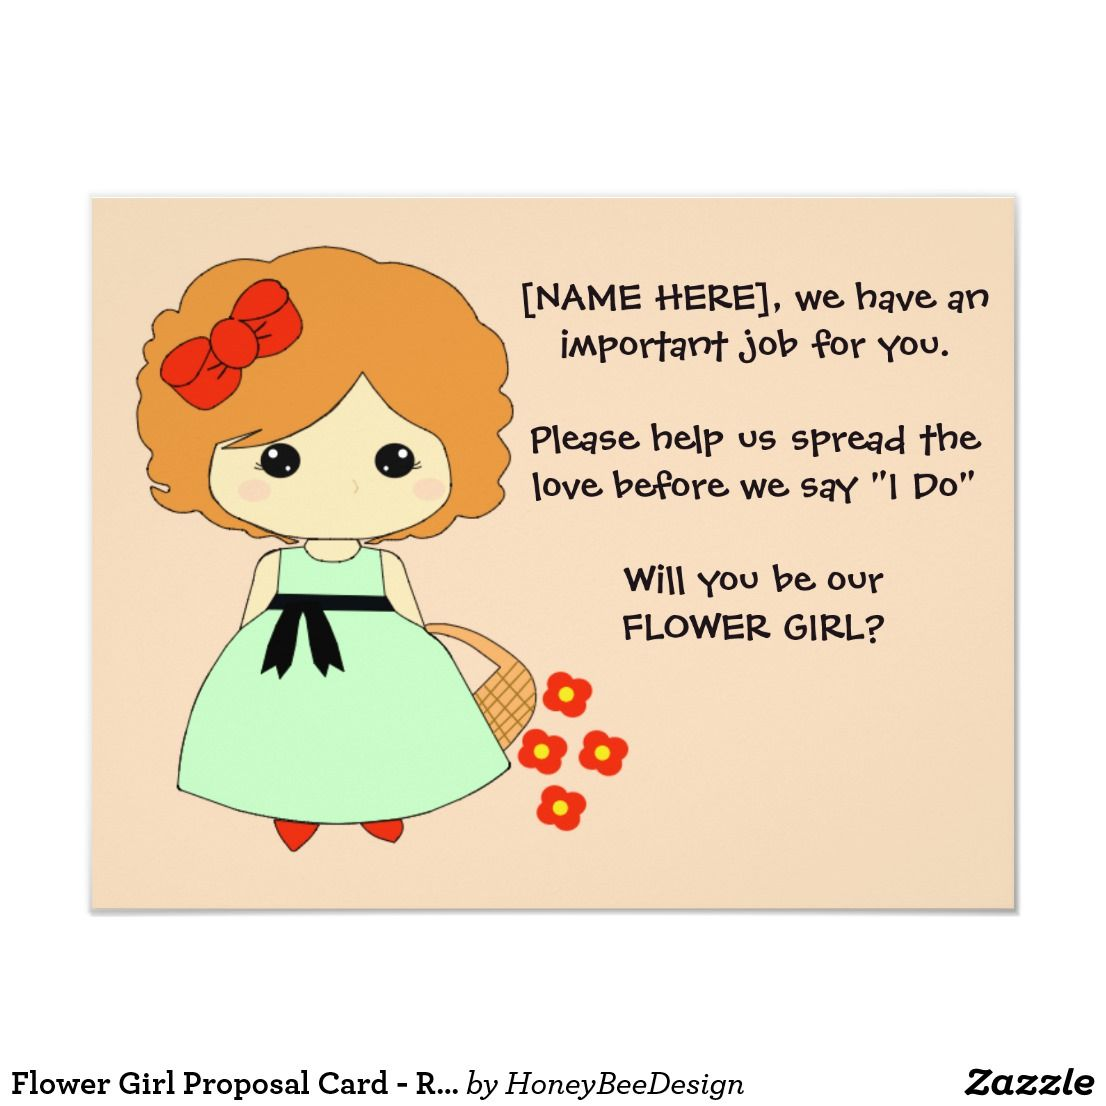 Flower girl proposal card red with images